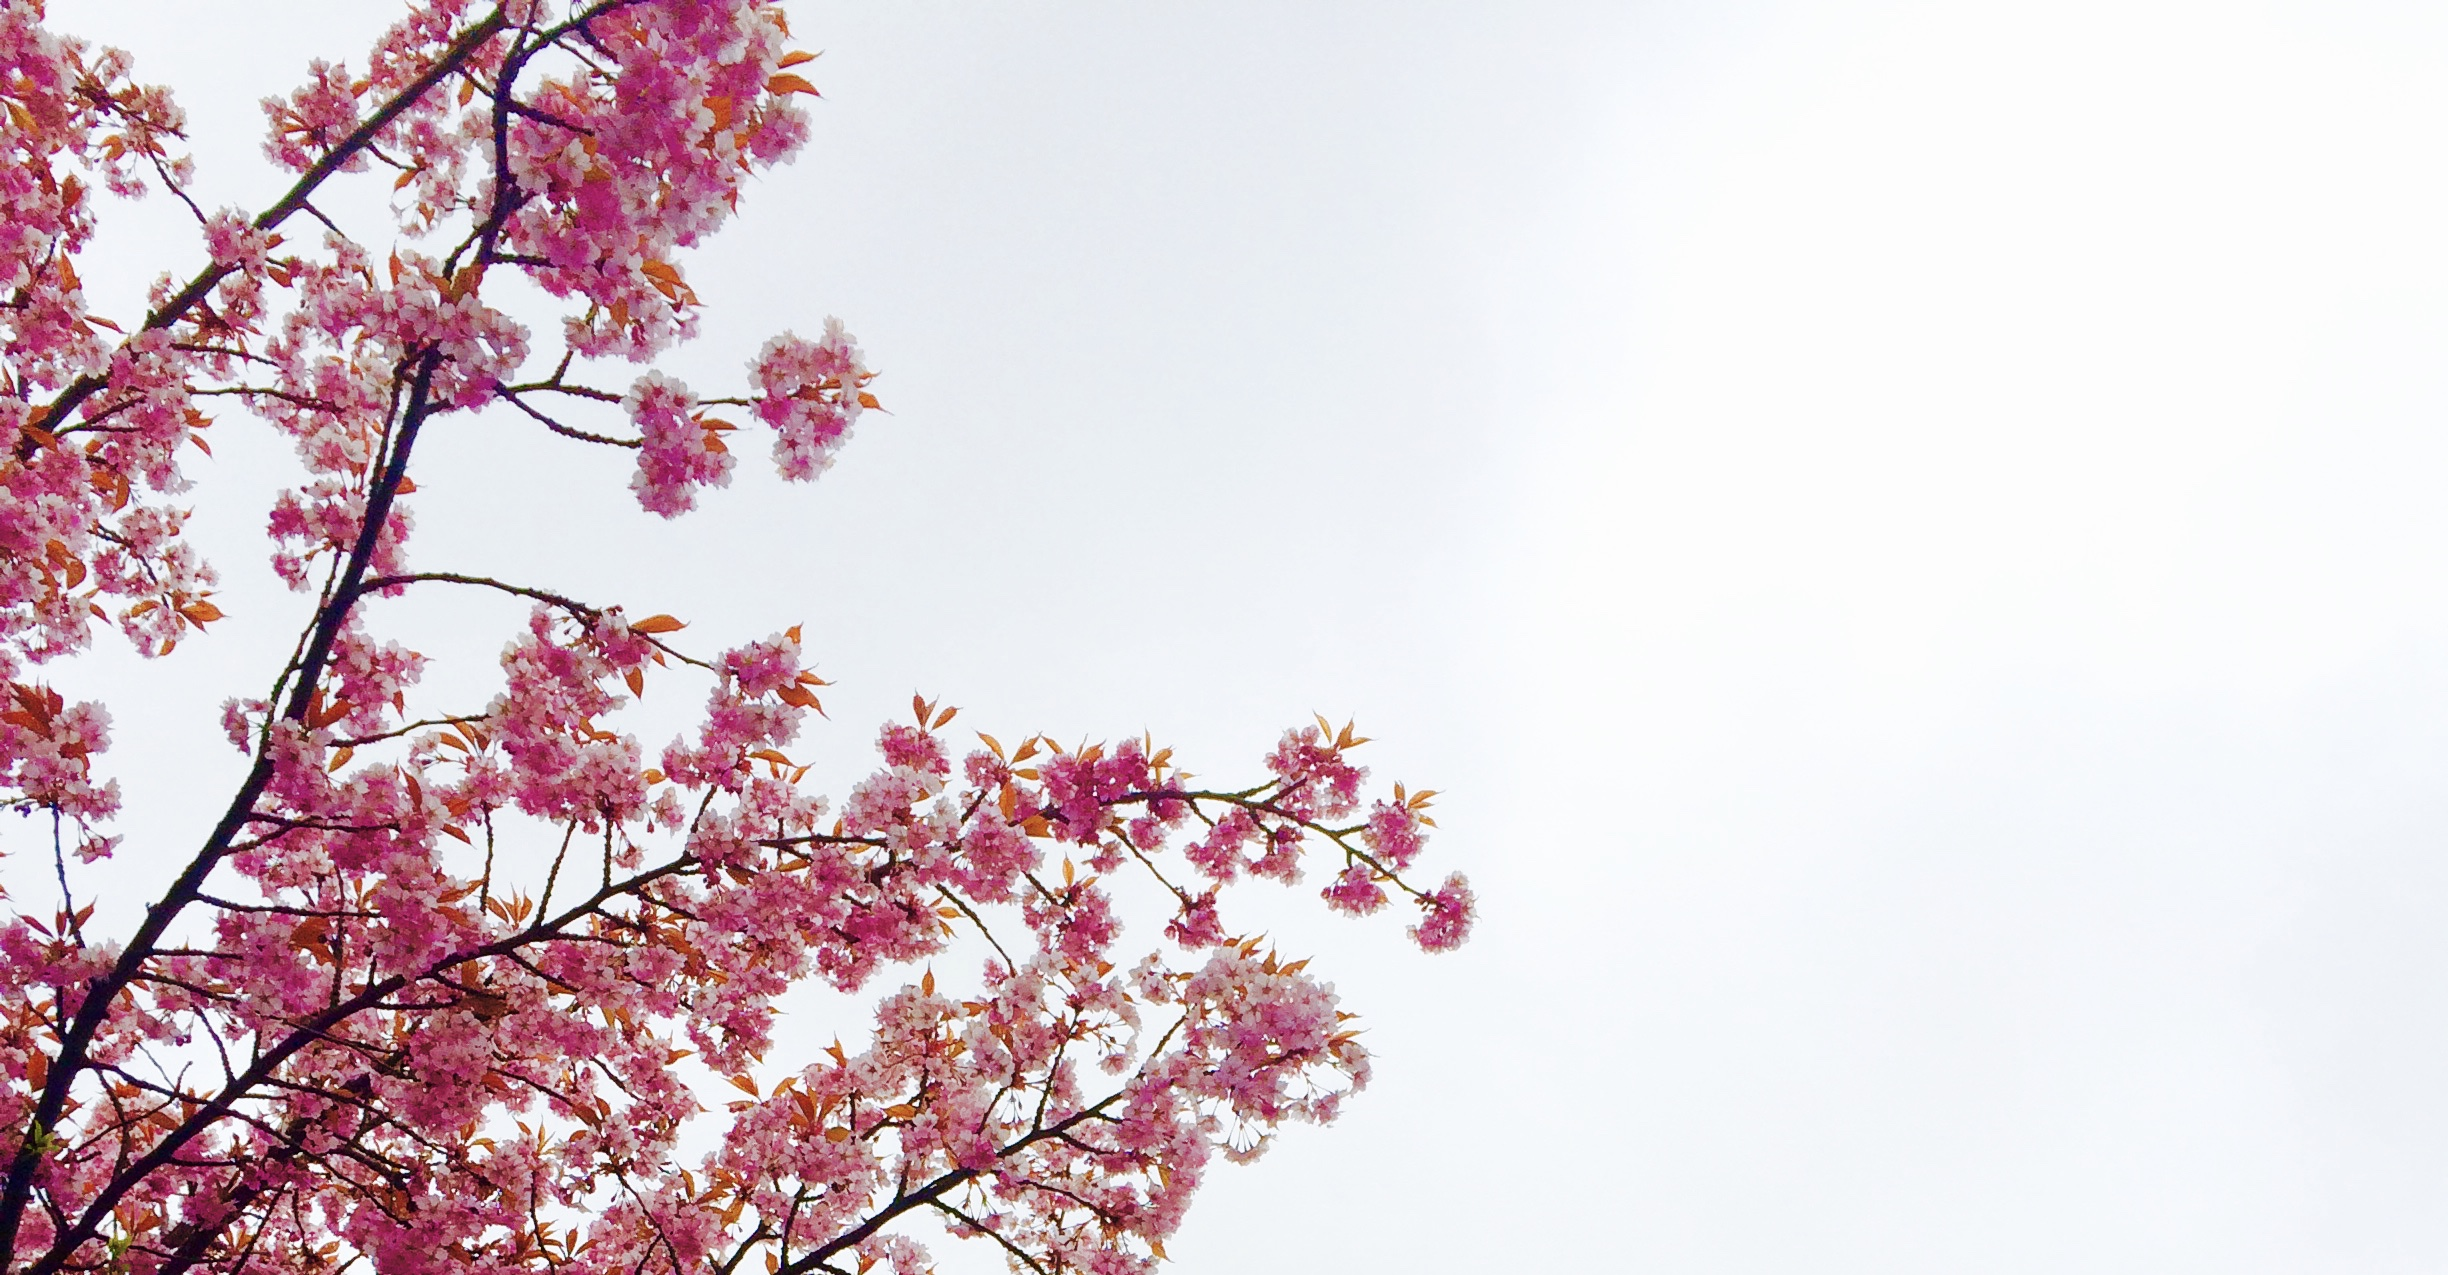 Best Wallpapers For Iphone 6 Hd 1000 Interesting Cherry Blossom Photos 183 Pexels 183 Free